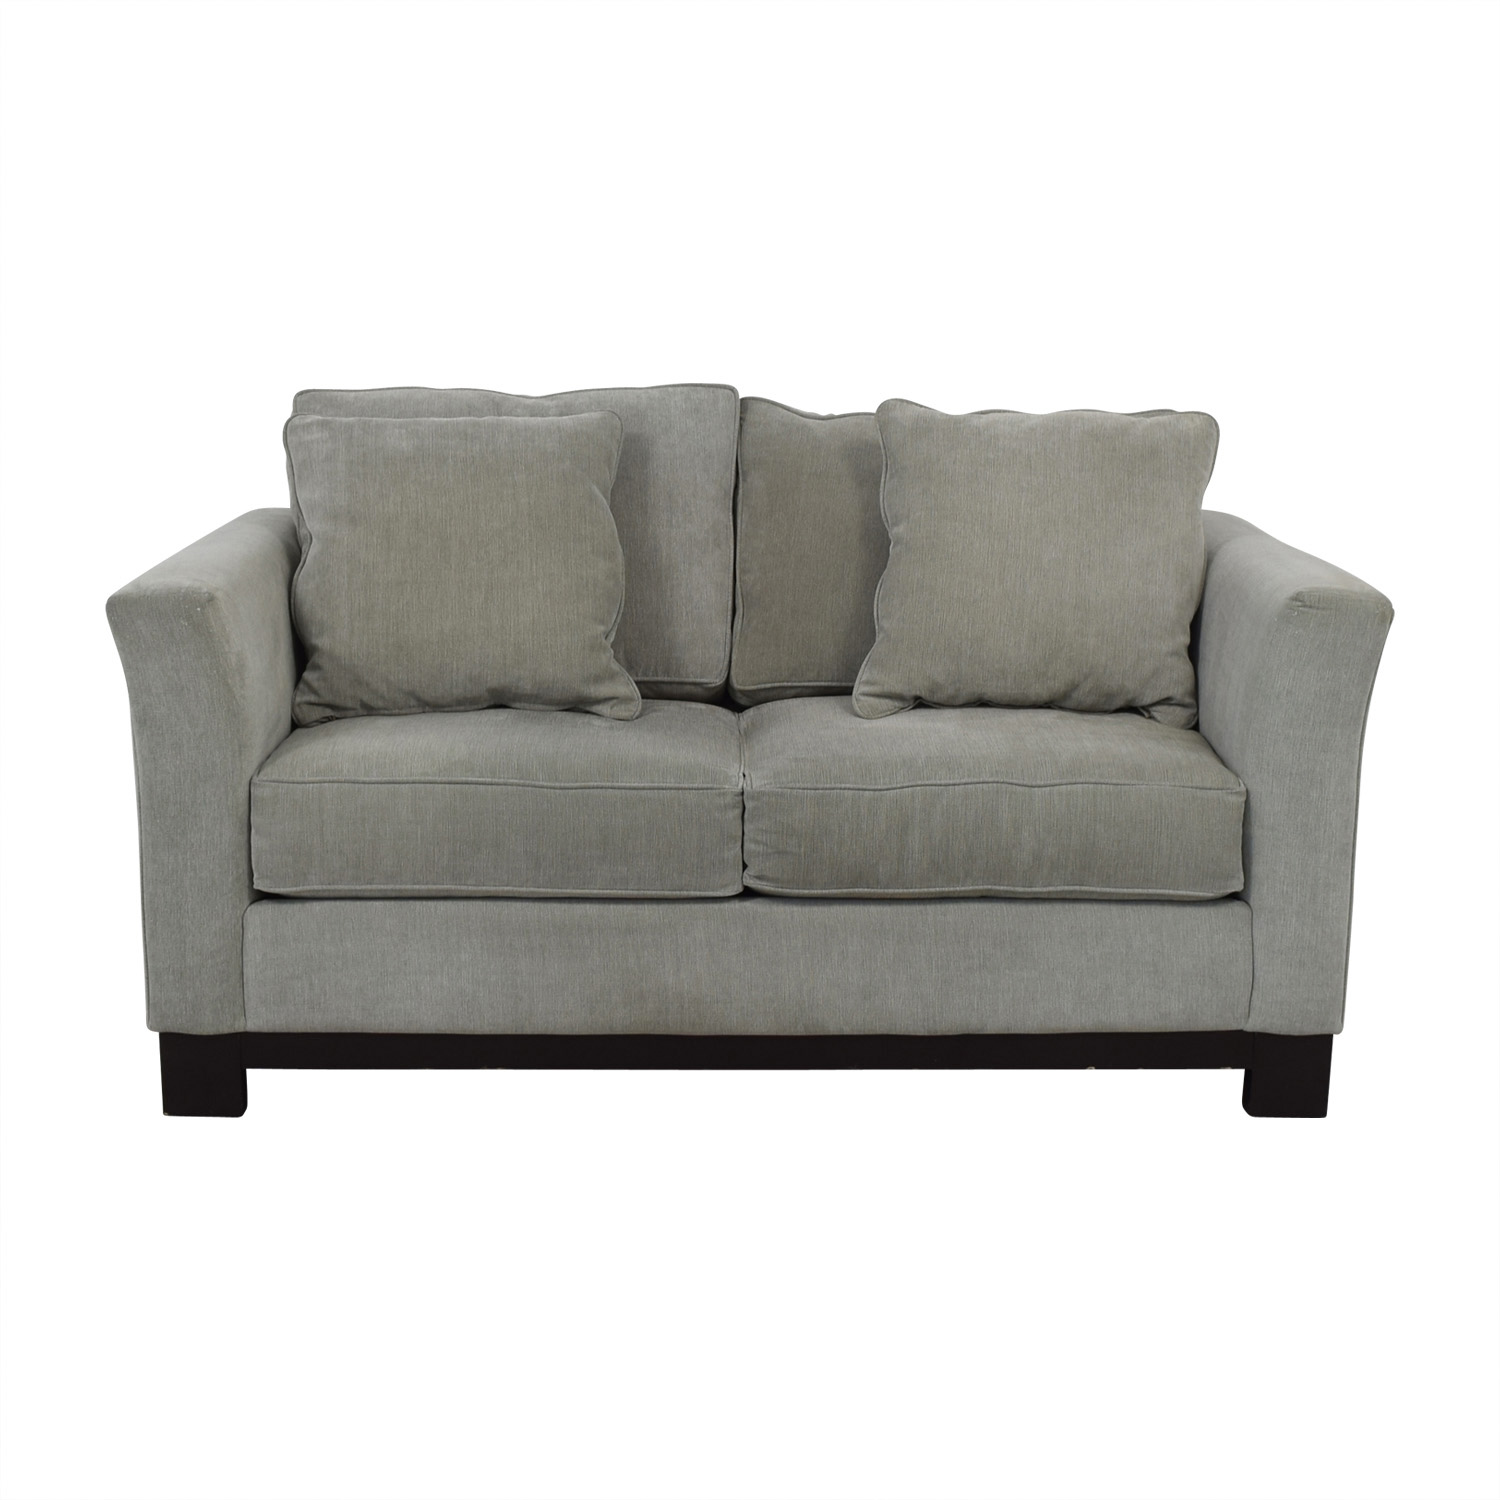 buy Macy's Macy's Light Blue Loveseat online